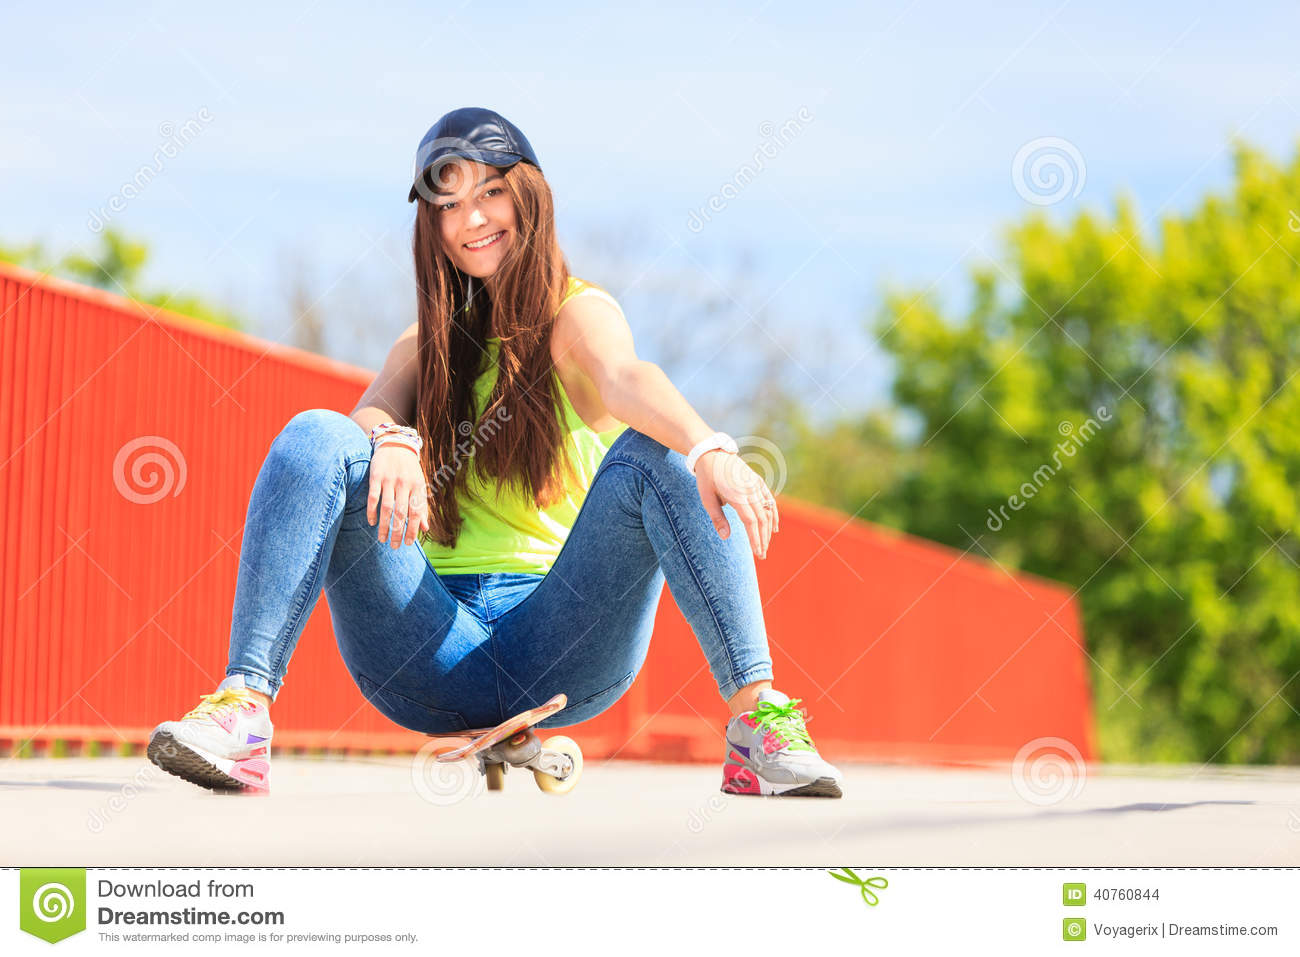 summer sport cool girl skater with skateboard stock photo